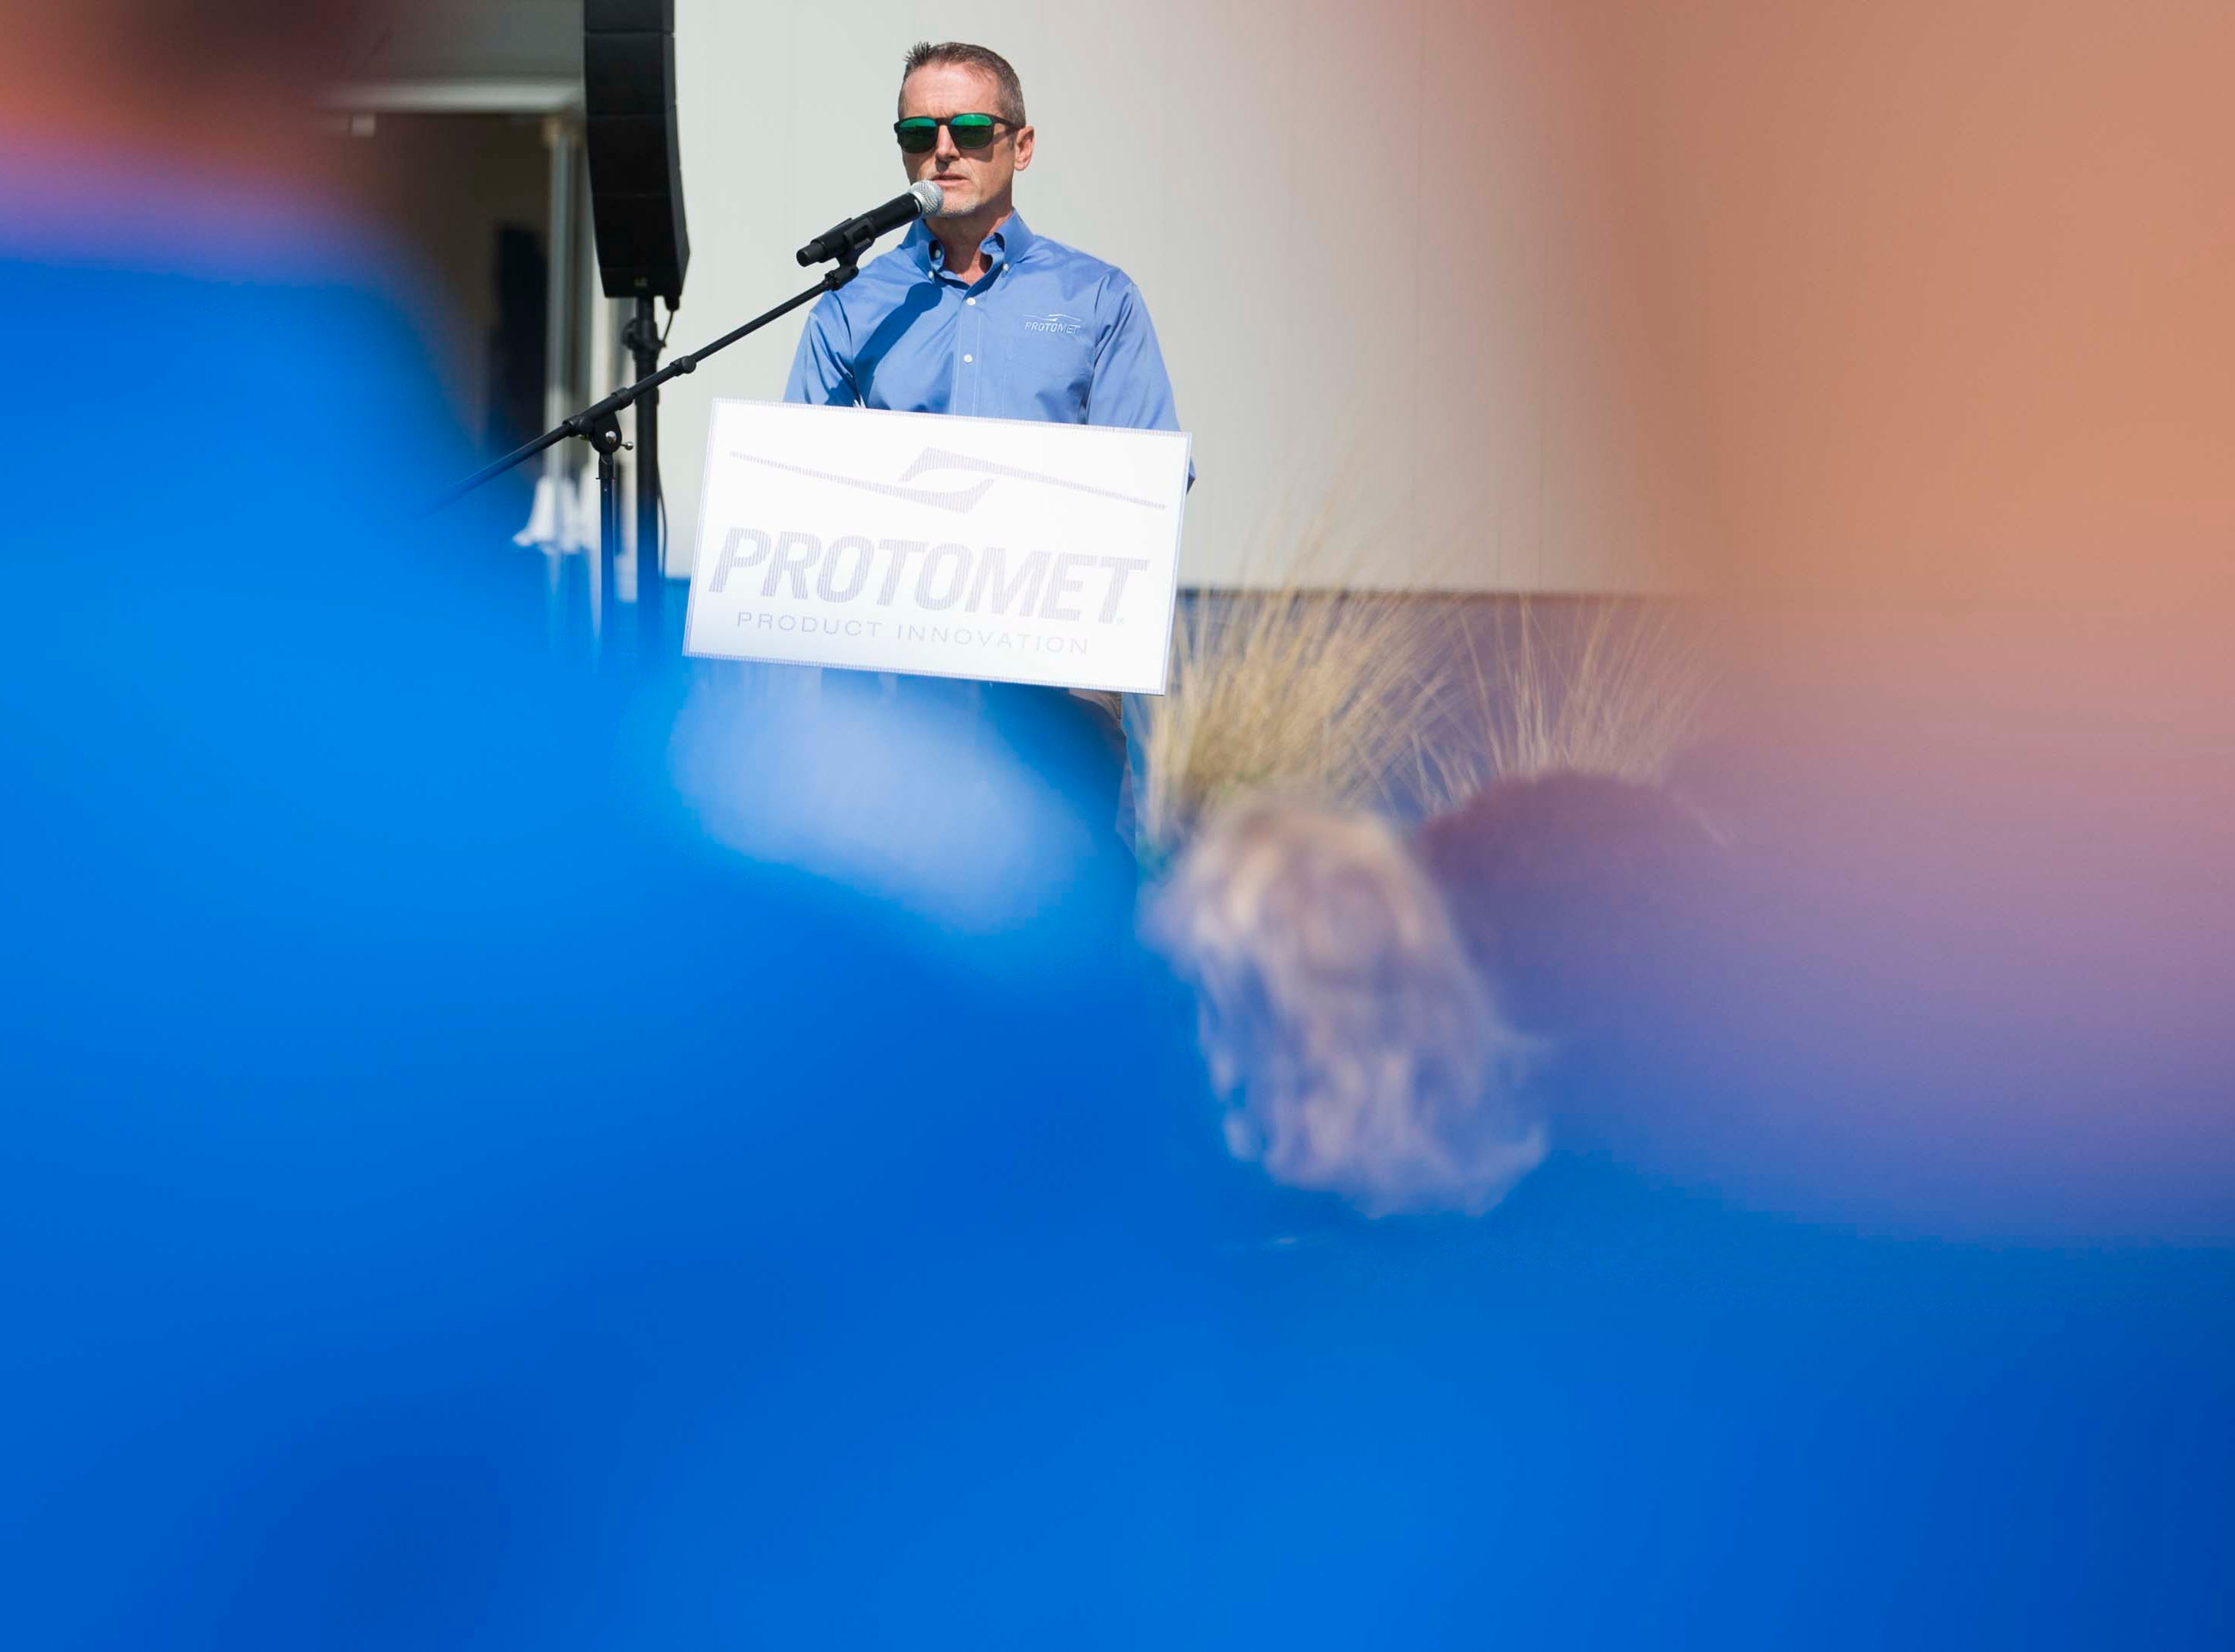 Jeff Bohanan, founder and CEO of Protomet, speaks at the opening of Protomet's $30 million plant in Loudon County on Thursday, April 18, 2019.